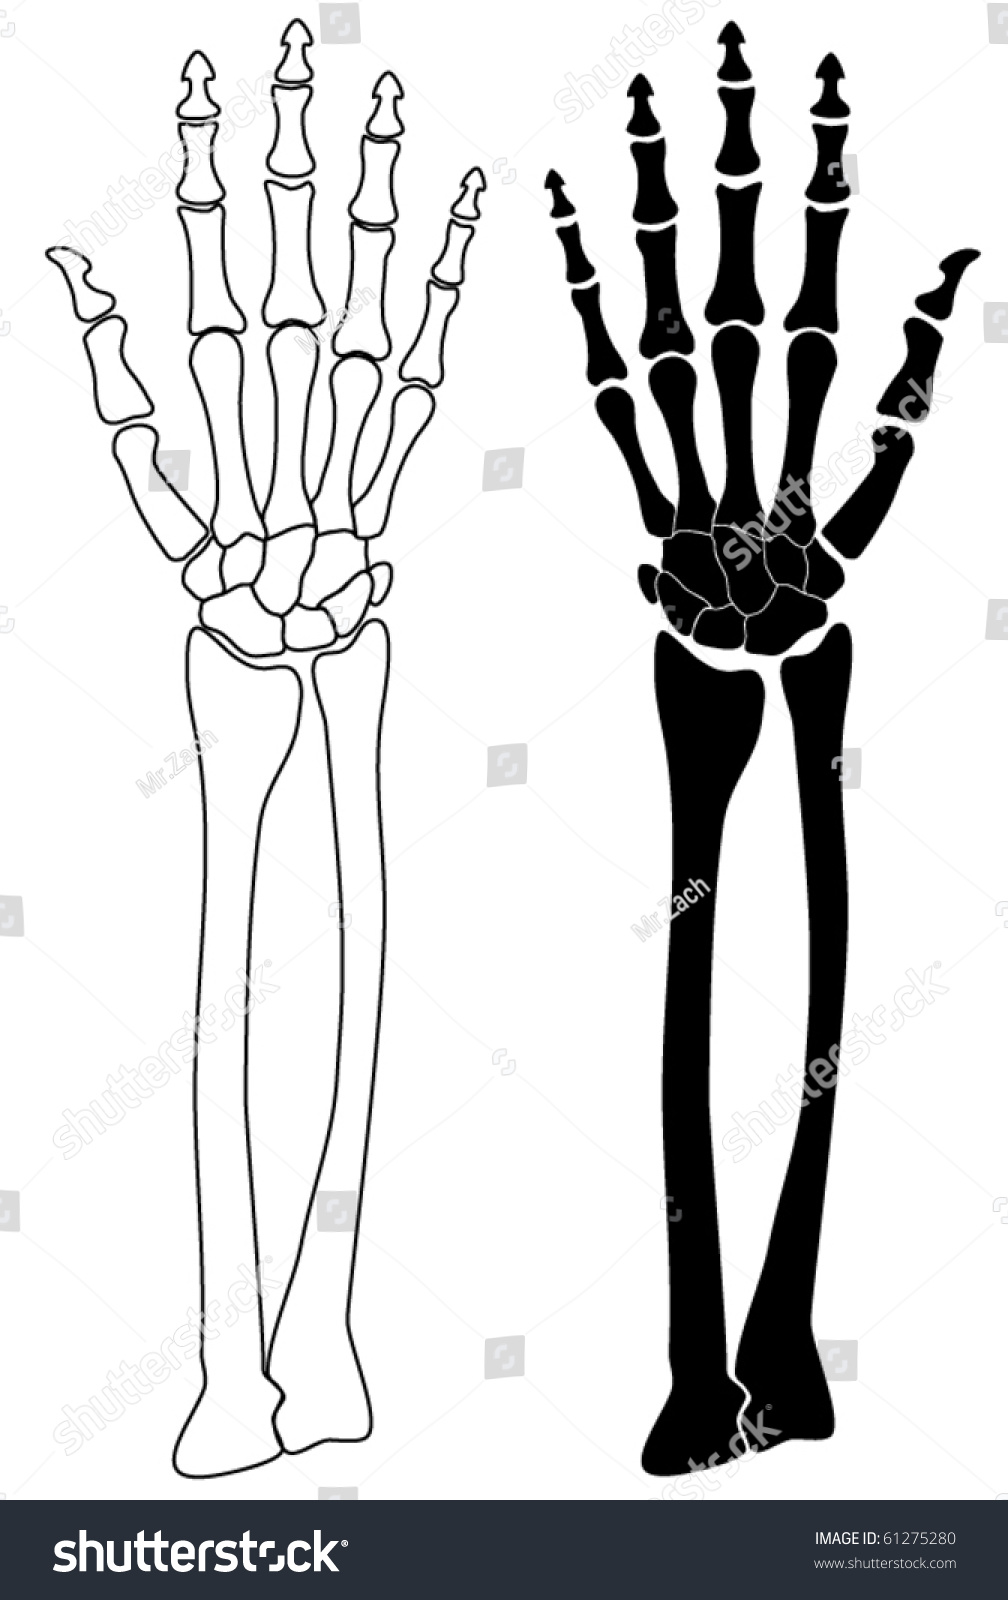 vector human skeleton hand stock vector 61275280 shutterstock rh shutterstock com Skeleton Hand Pointing Finger skeleton hand peace sign vector